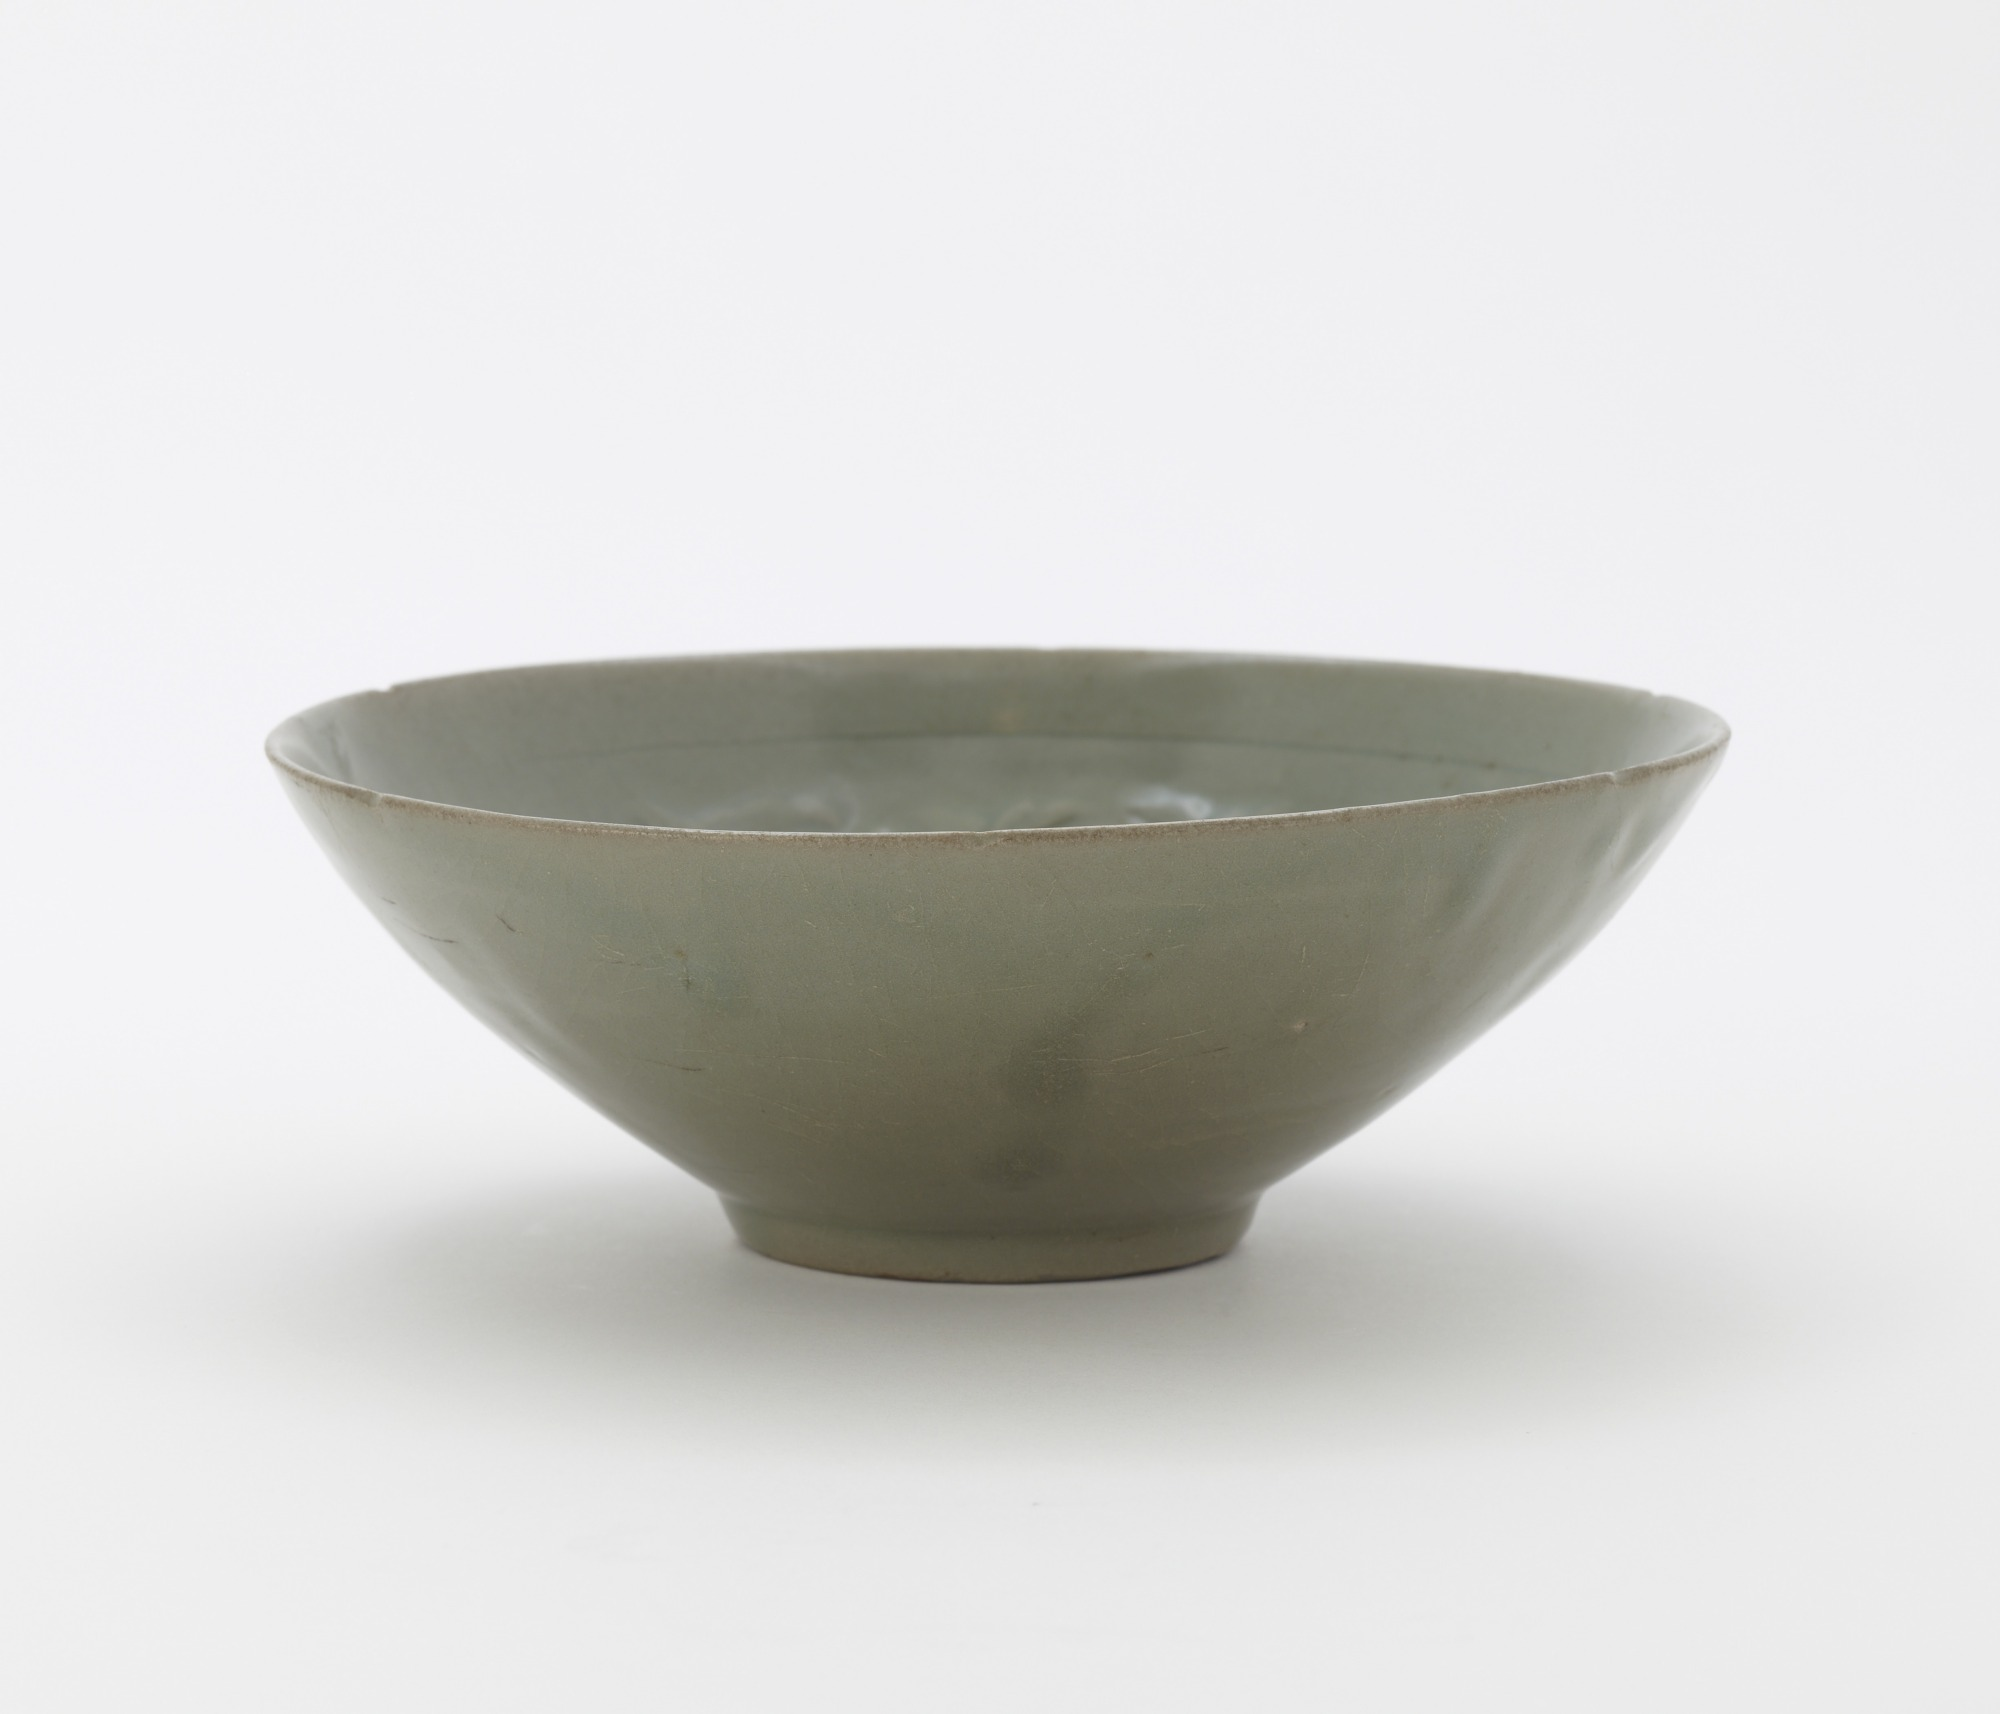 Bowl with molded and incised design of three boys among vinescrolls, profile